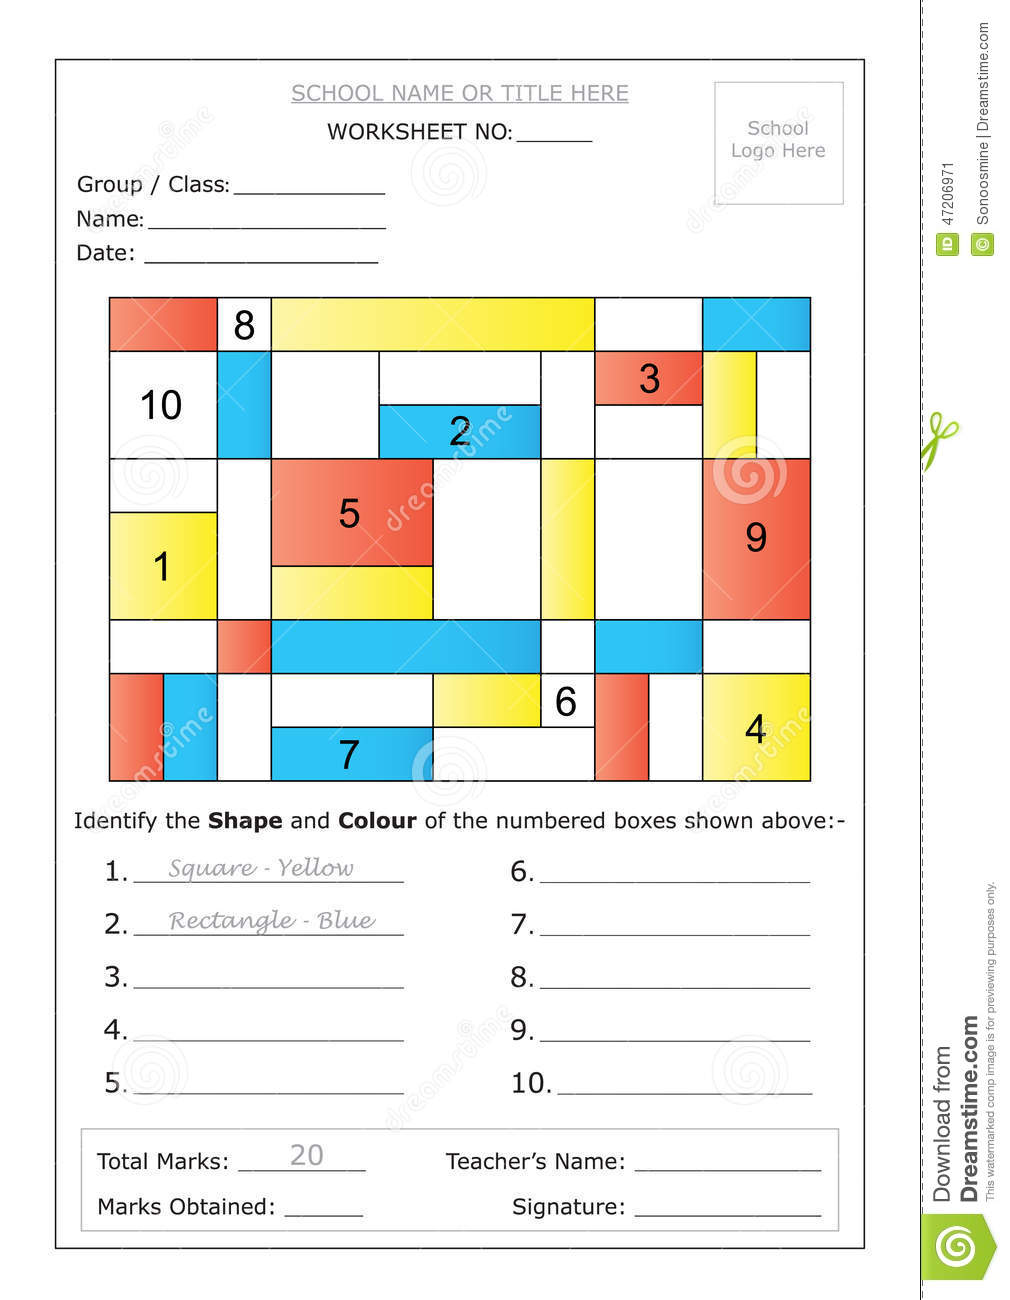 Free Worksheets square and rectangle worksheet : Worksheet - Identify Shape u0026 Colour Stock Vector - Image ...